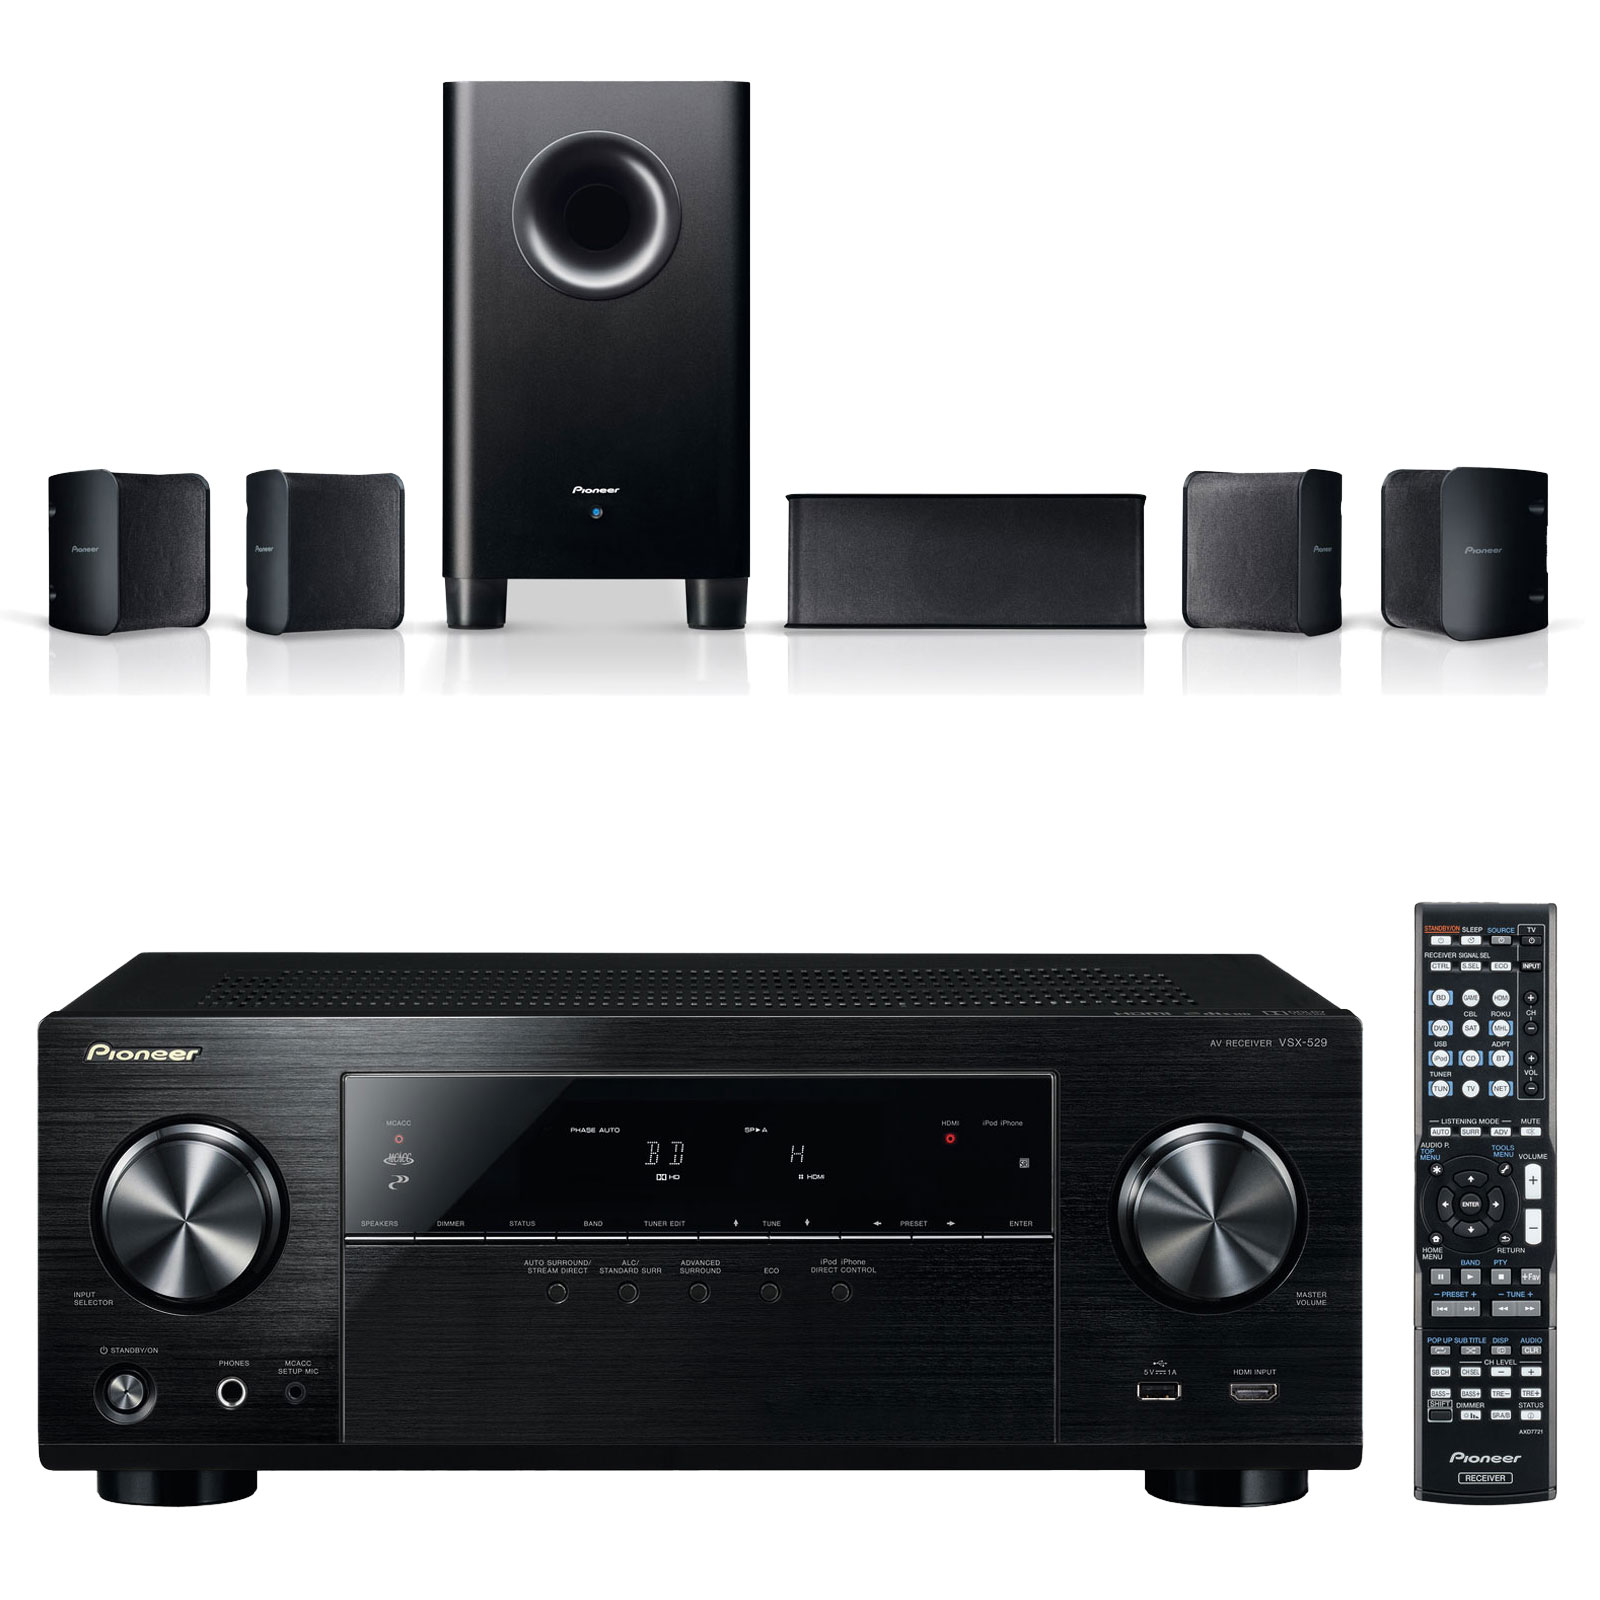 Pioneer vsx 529 k pioneer s hs100 ensemble home cin ma pioneer sur ldlc - Ensemble tv home cinema ...